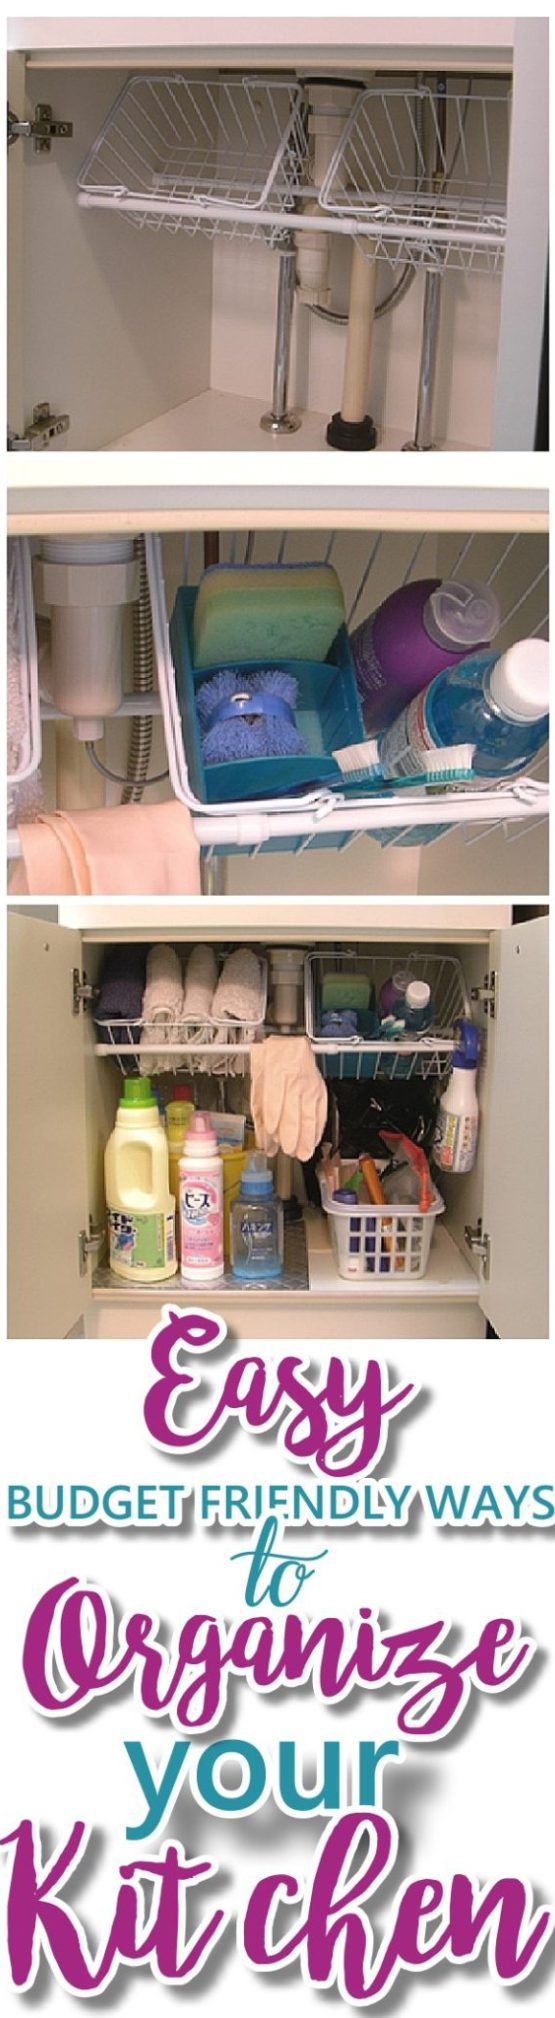 EASY Budget Friendly Ways to Organize your Kitchen {Quick Tips, Space Saving Tricks, Clever Hacks & Organizing Ideas} – Dreaming in DIY